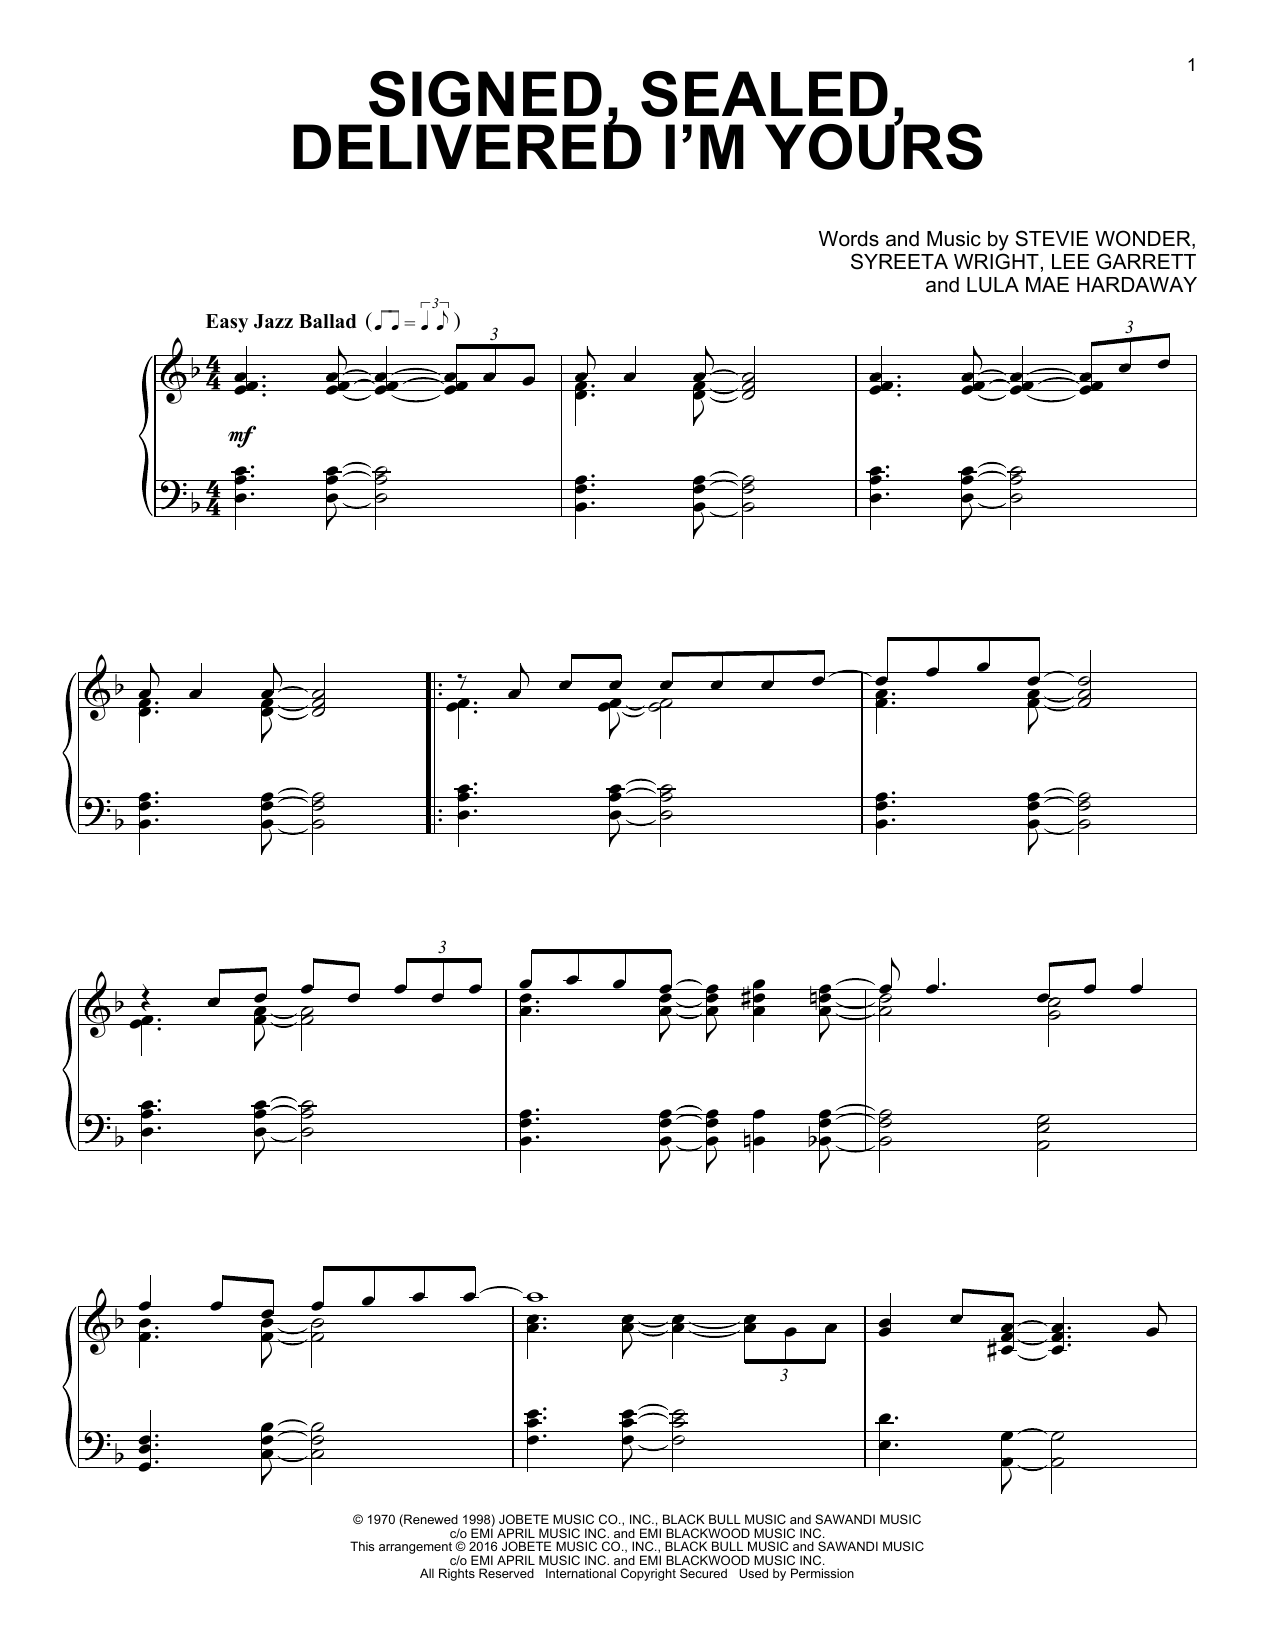 Download Stevie Wonder 'Signed, Sealed, Delivered I'm Yours' Digital Sheet Music Notes & Chords and start playing in minutes